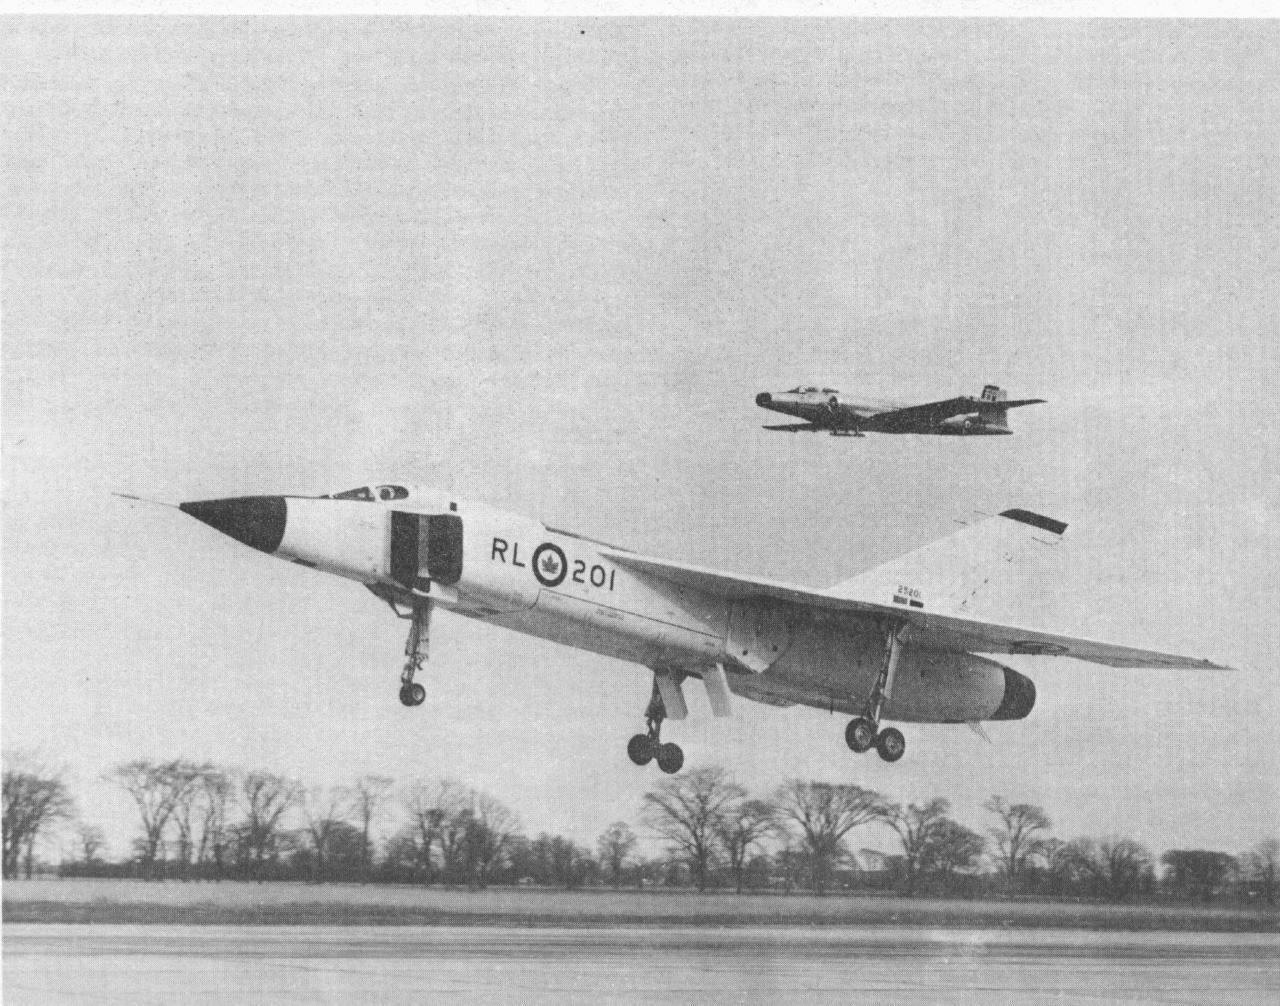 avro arrow rl landing rcaf sabre fighter chase plane  avro arrow rl 201 landing rcaf sabre fighter chase plane advanced aircraft arrow planes and aircraft